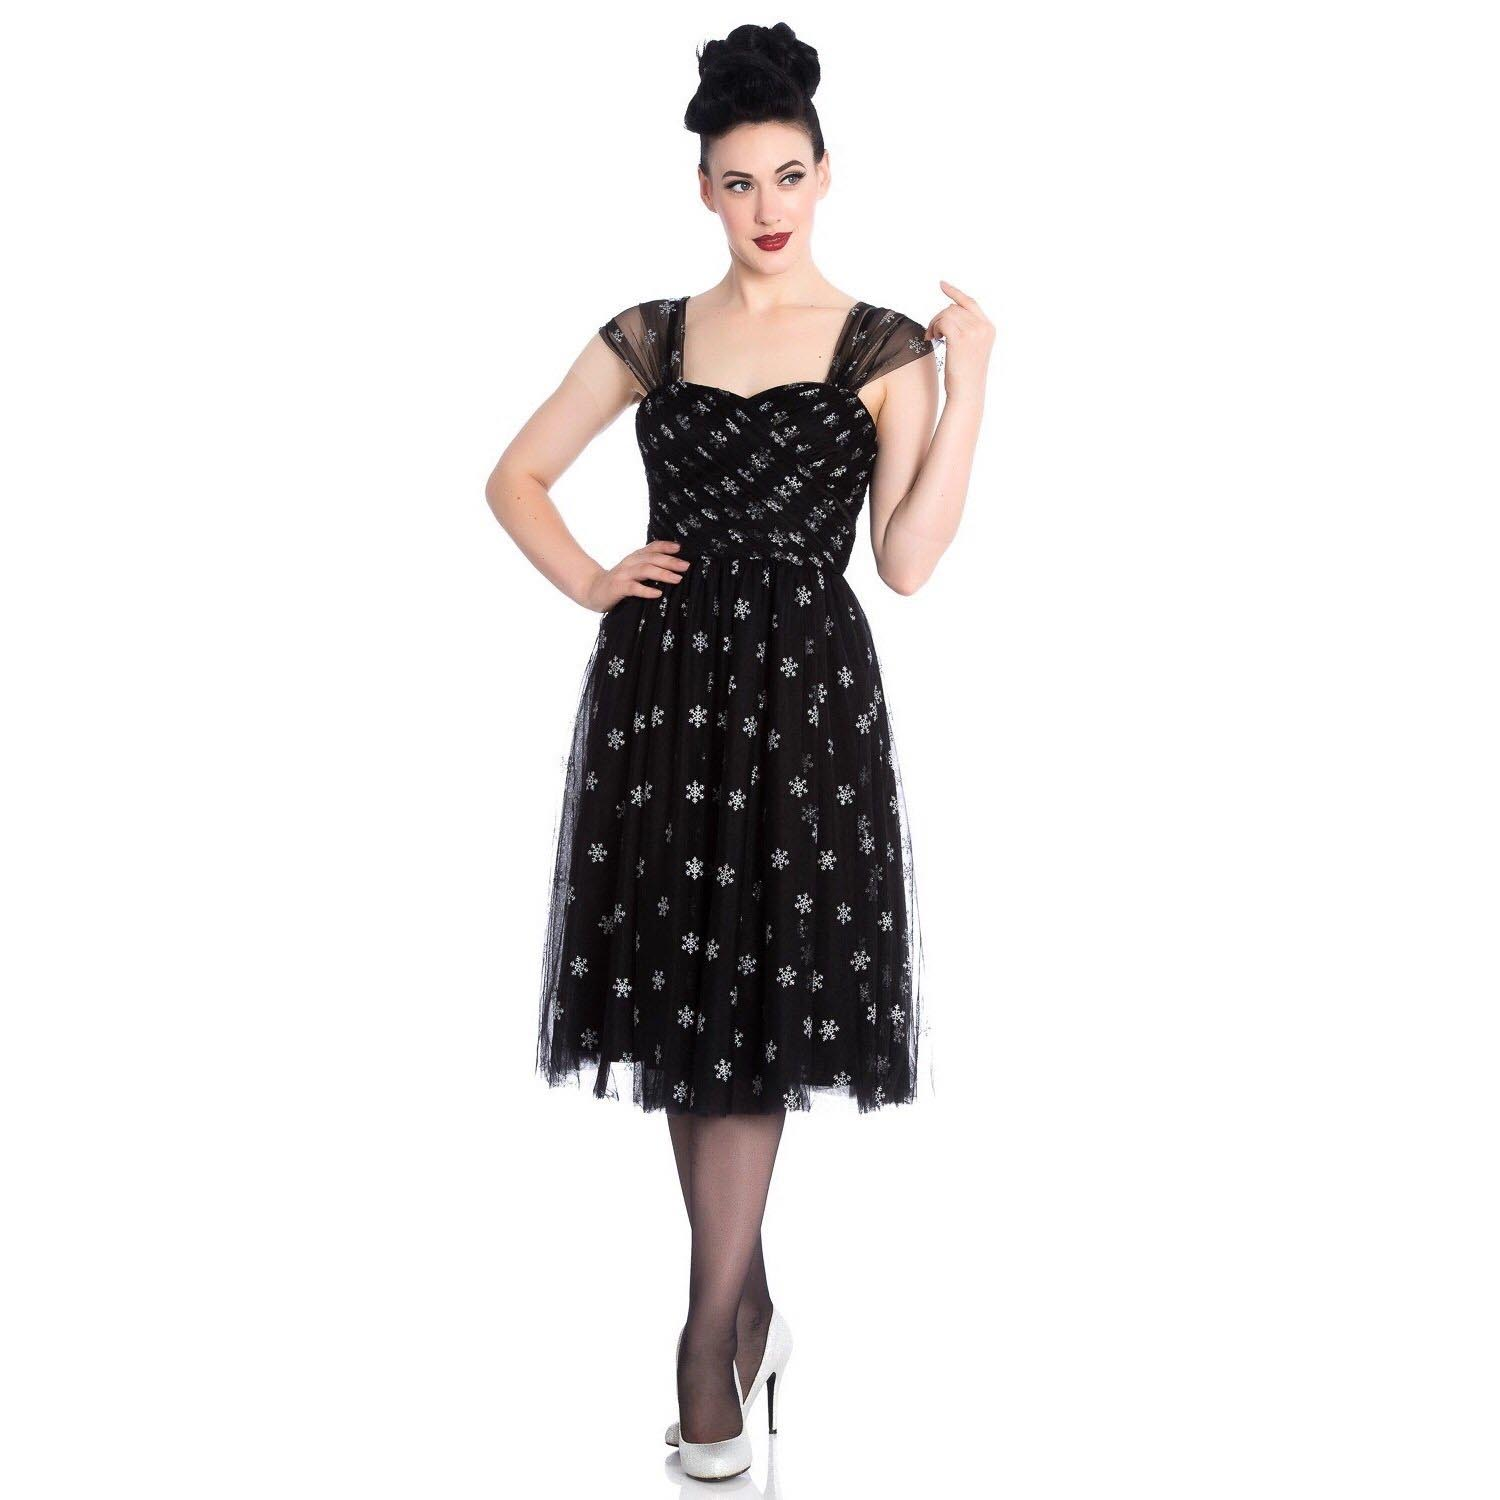 Hell-Bunny-50s-Black-Christmas-Dress-SNOWSTAR-Glitter-Snowflakes-All-Sizes thumbnail 11